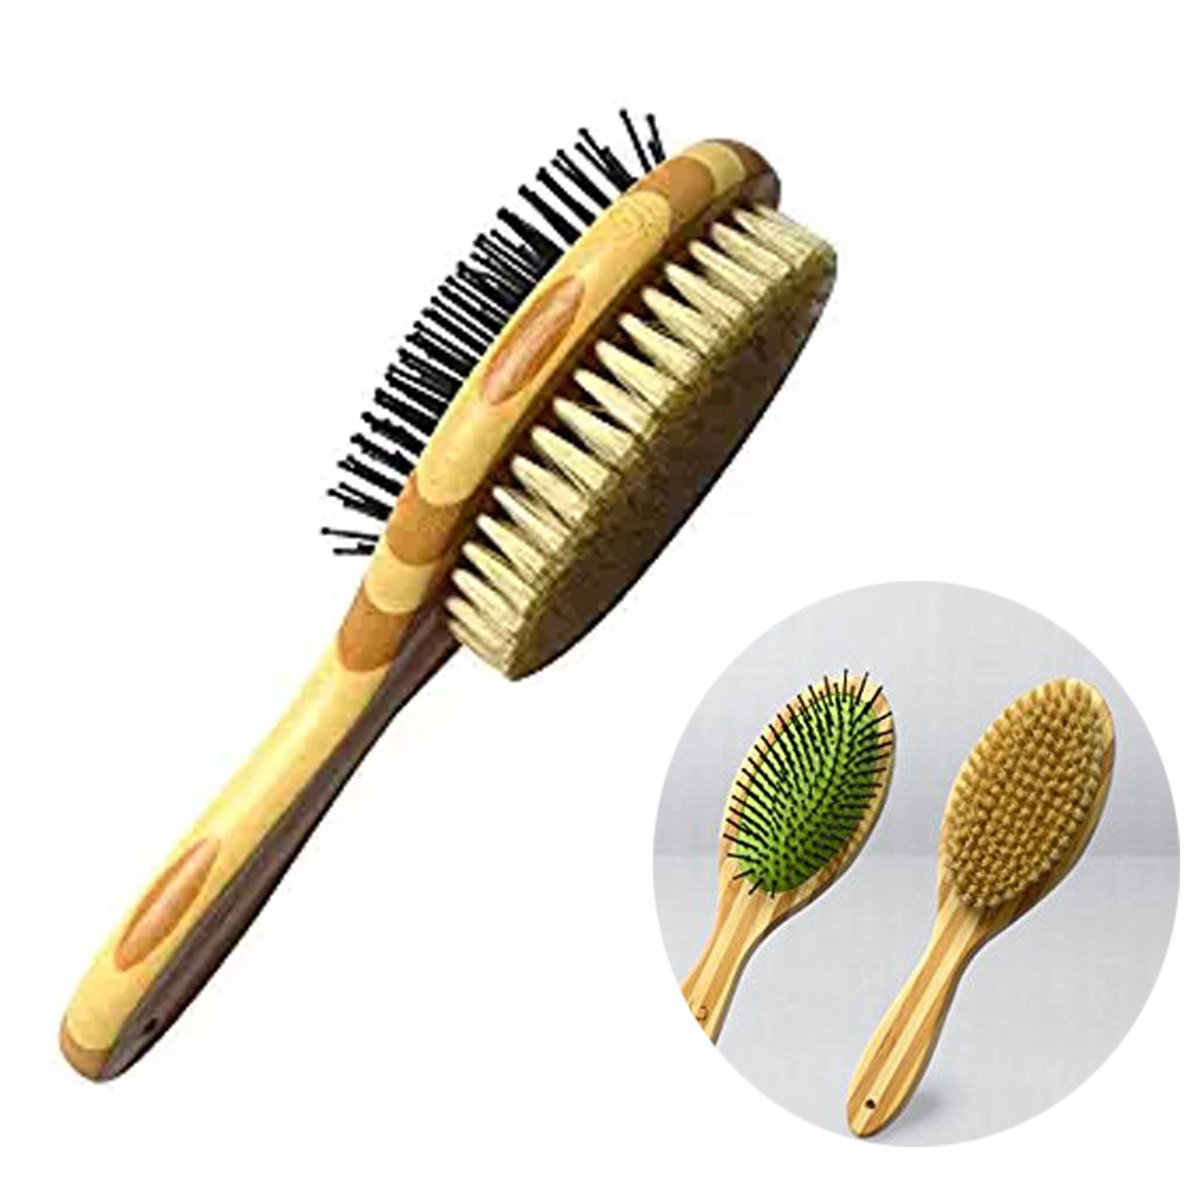 Schnappy Pet Dog Brush Comb,Professional Double Sided Pin & Bristle Bamboo Brush for Dogs & Cats,Pet Shedding Tool for Short Long Hair